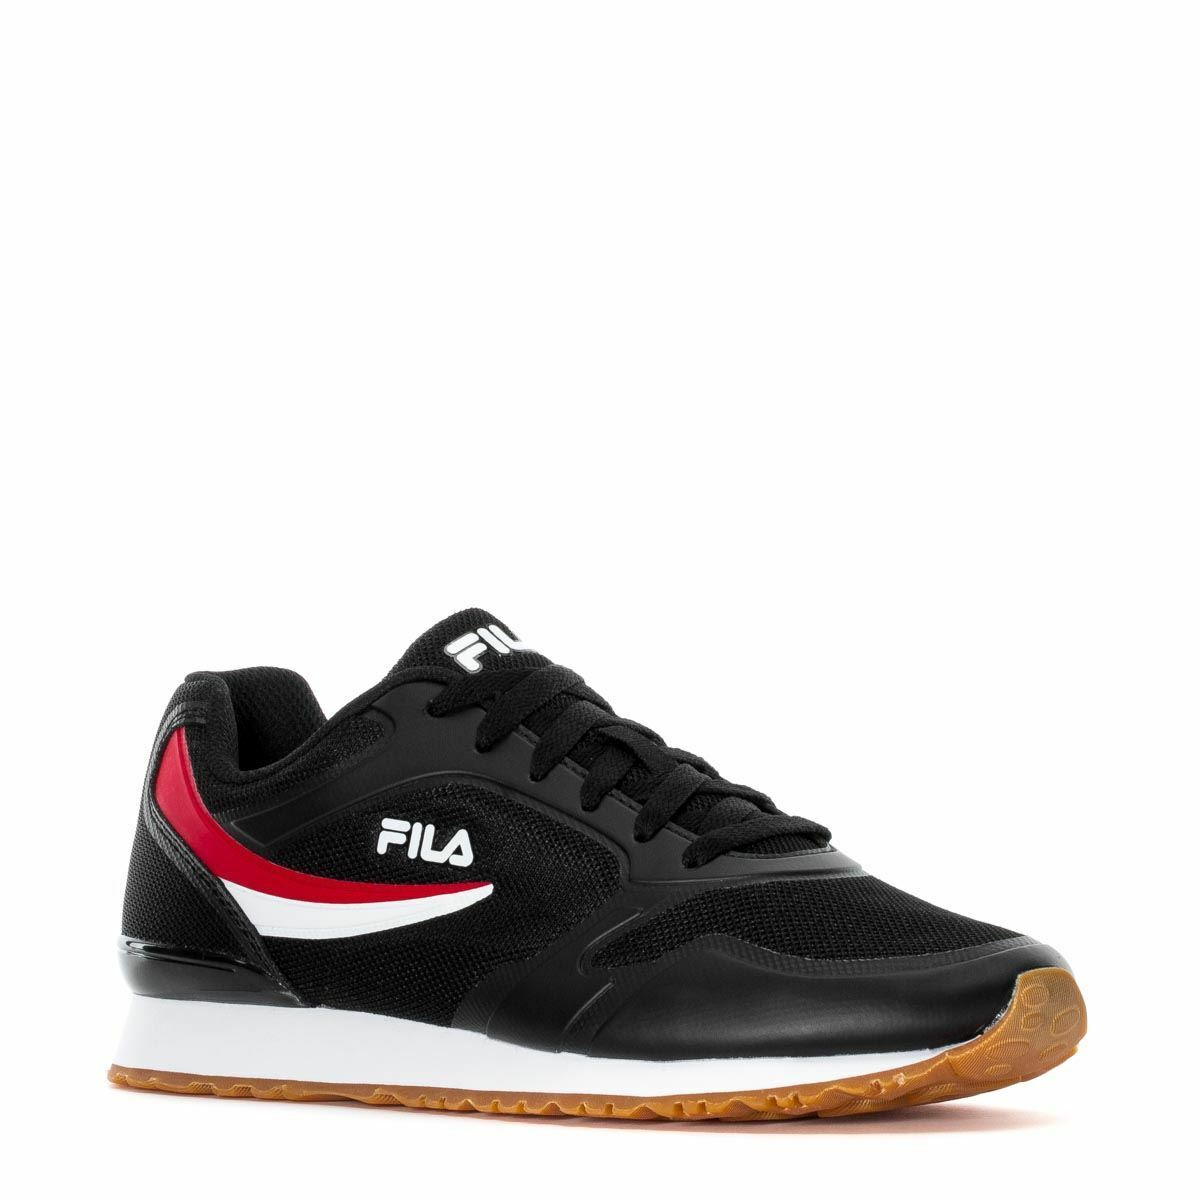 NEW MEN'S MEN'S NEW FILA FORERUNNER CLASSIC RETRO BLACK Weiß ROT LACE UP RUNNING SNEAKERS eb01f3